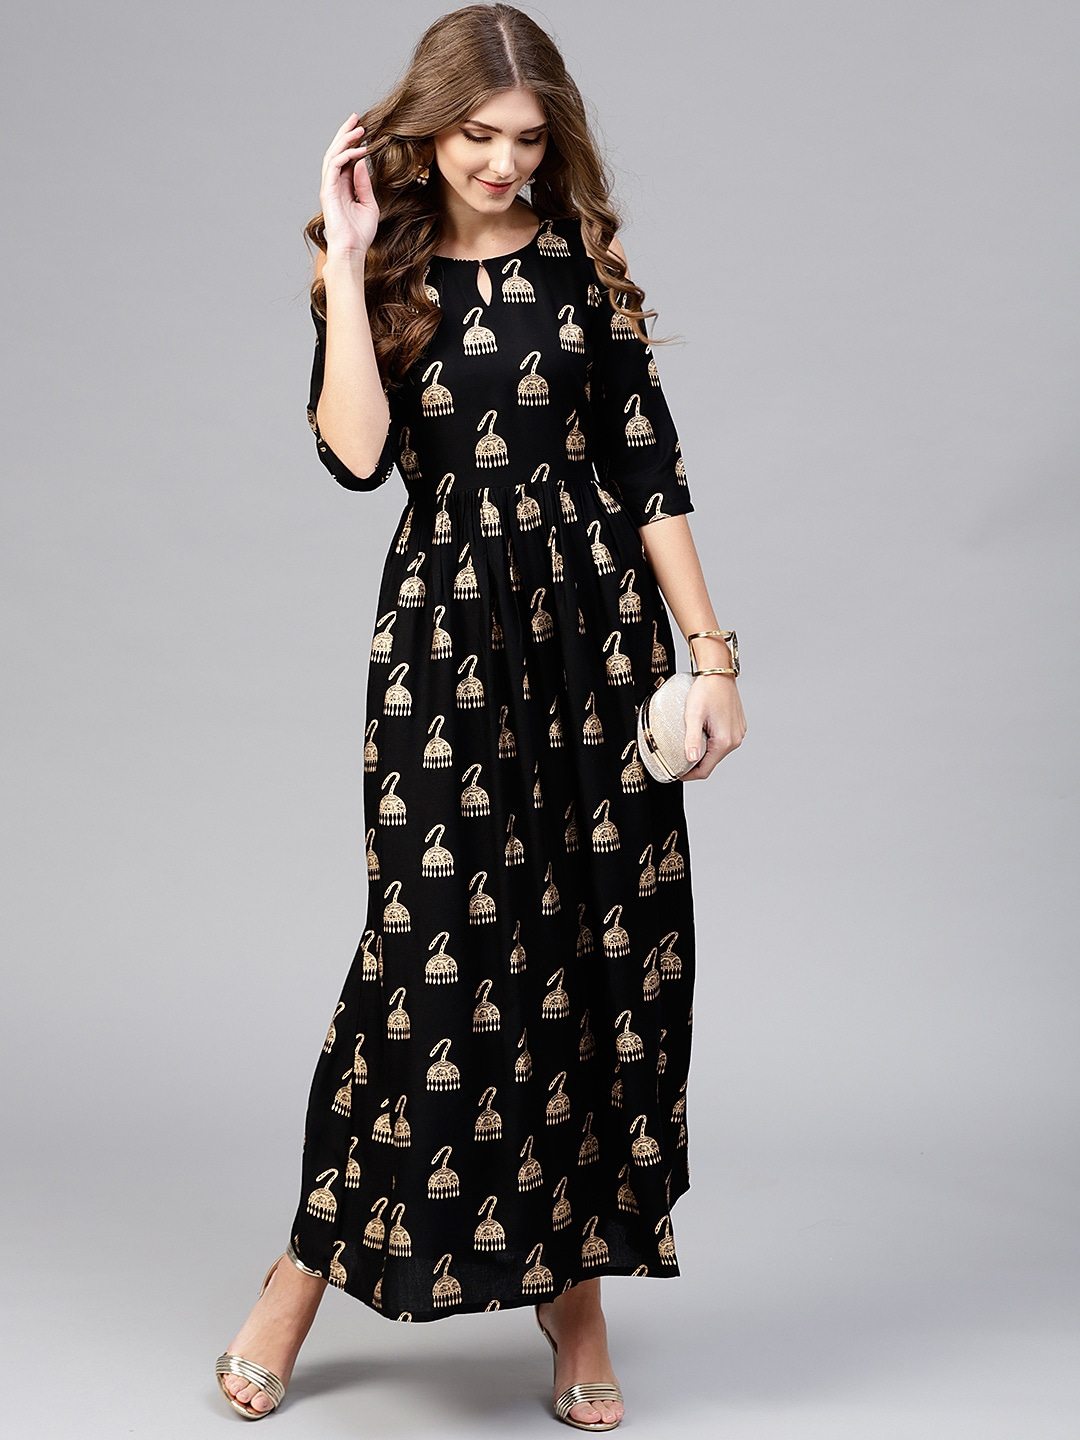 d1497659d59 Dresses For Women - Buy Women Dresses Online - Myntra